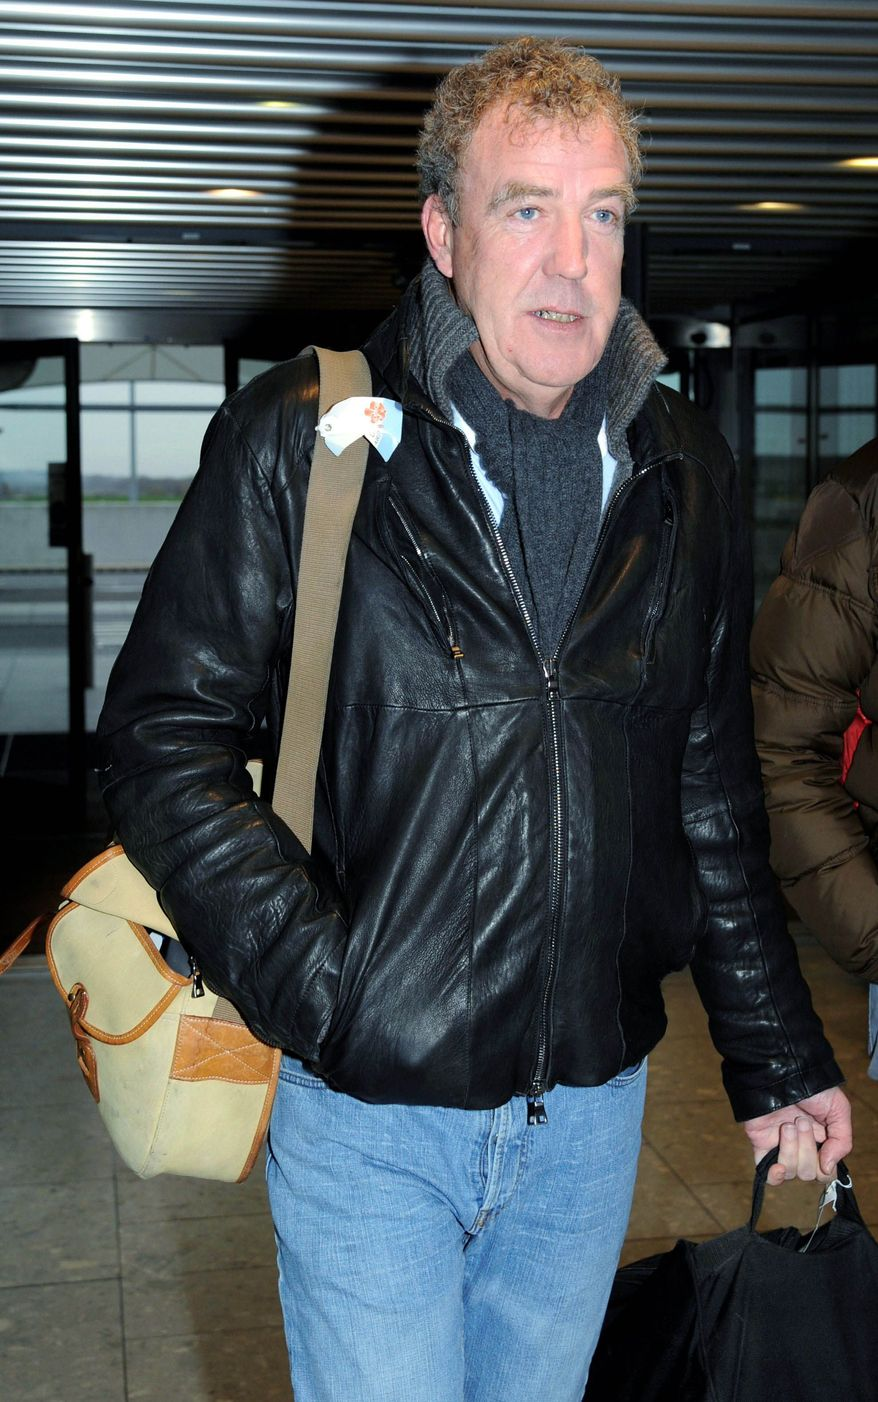 """""""Top Gear"""" host Jeremy Clarkson has one union calling for his job after the BBC personality said Wednesday that striking public-sector workers should be shot. (Associated Press)"""